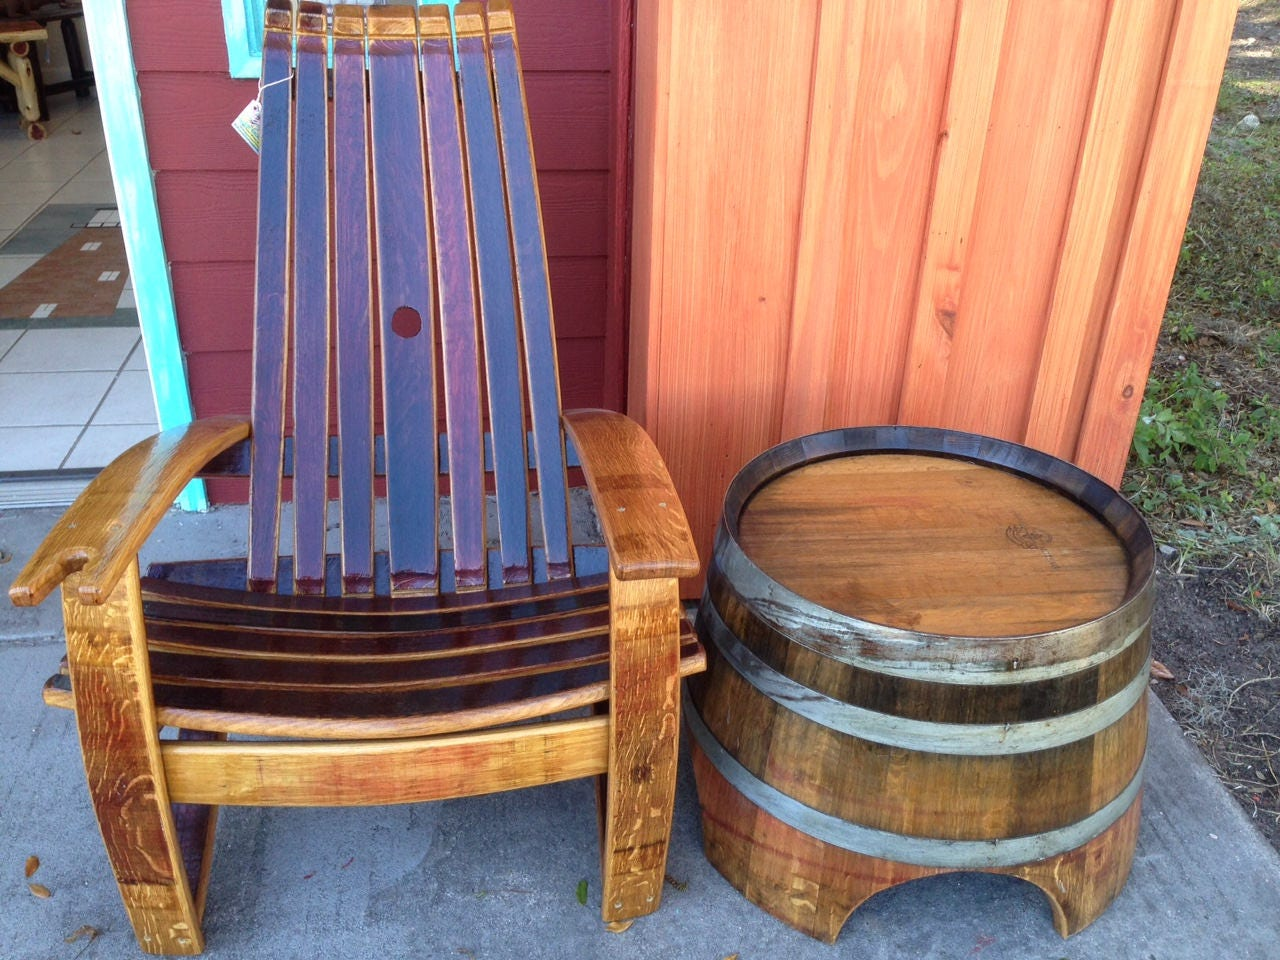 Wine Barrel Chairs   Whiskey Barrel Chairs   Comfortable Adirondack Chairs  Southeast Delivery Only